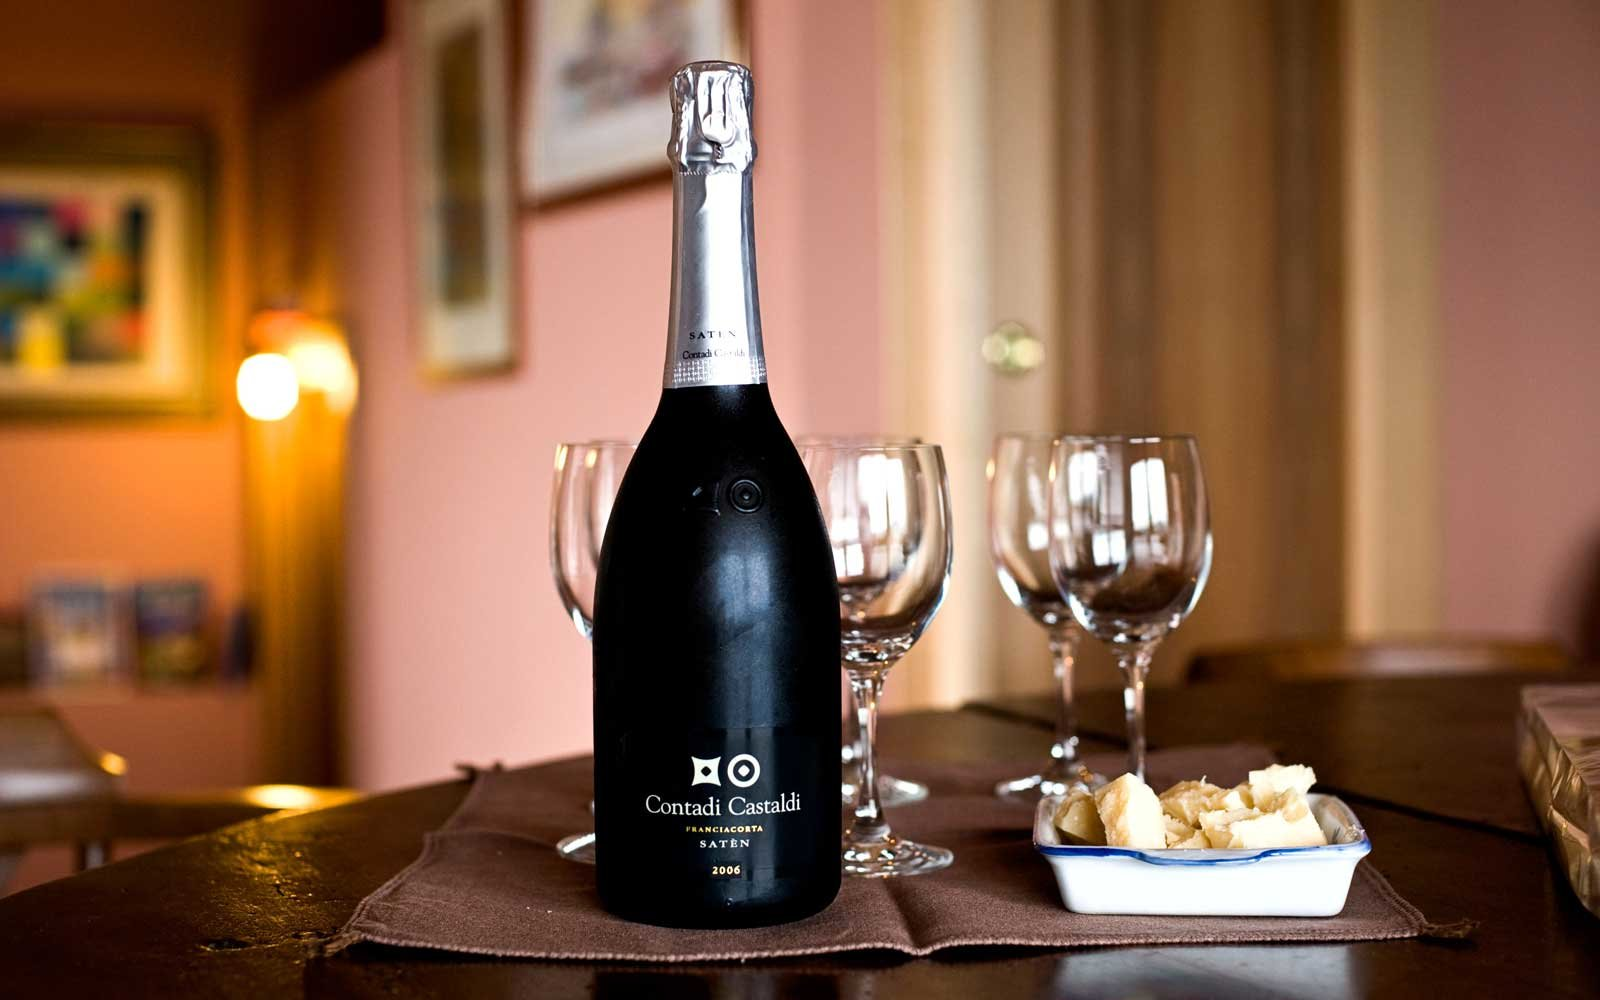 Sparkling Wine from Contadi Castaldi, in the Franciacorta Wine Region of Italy